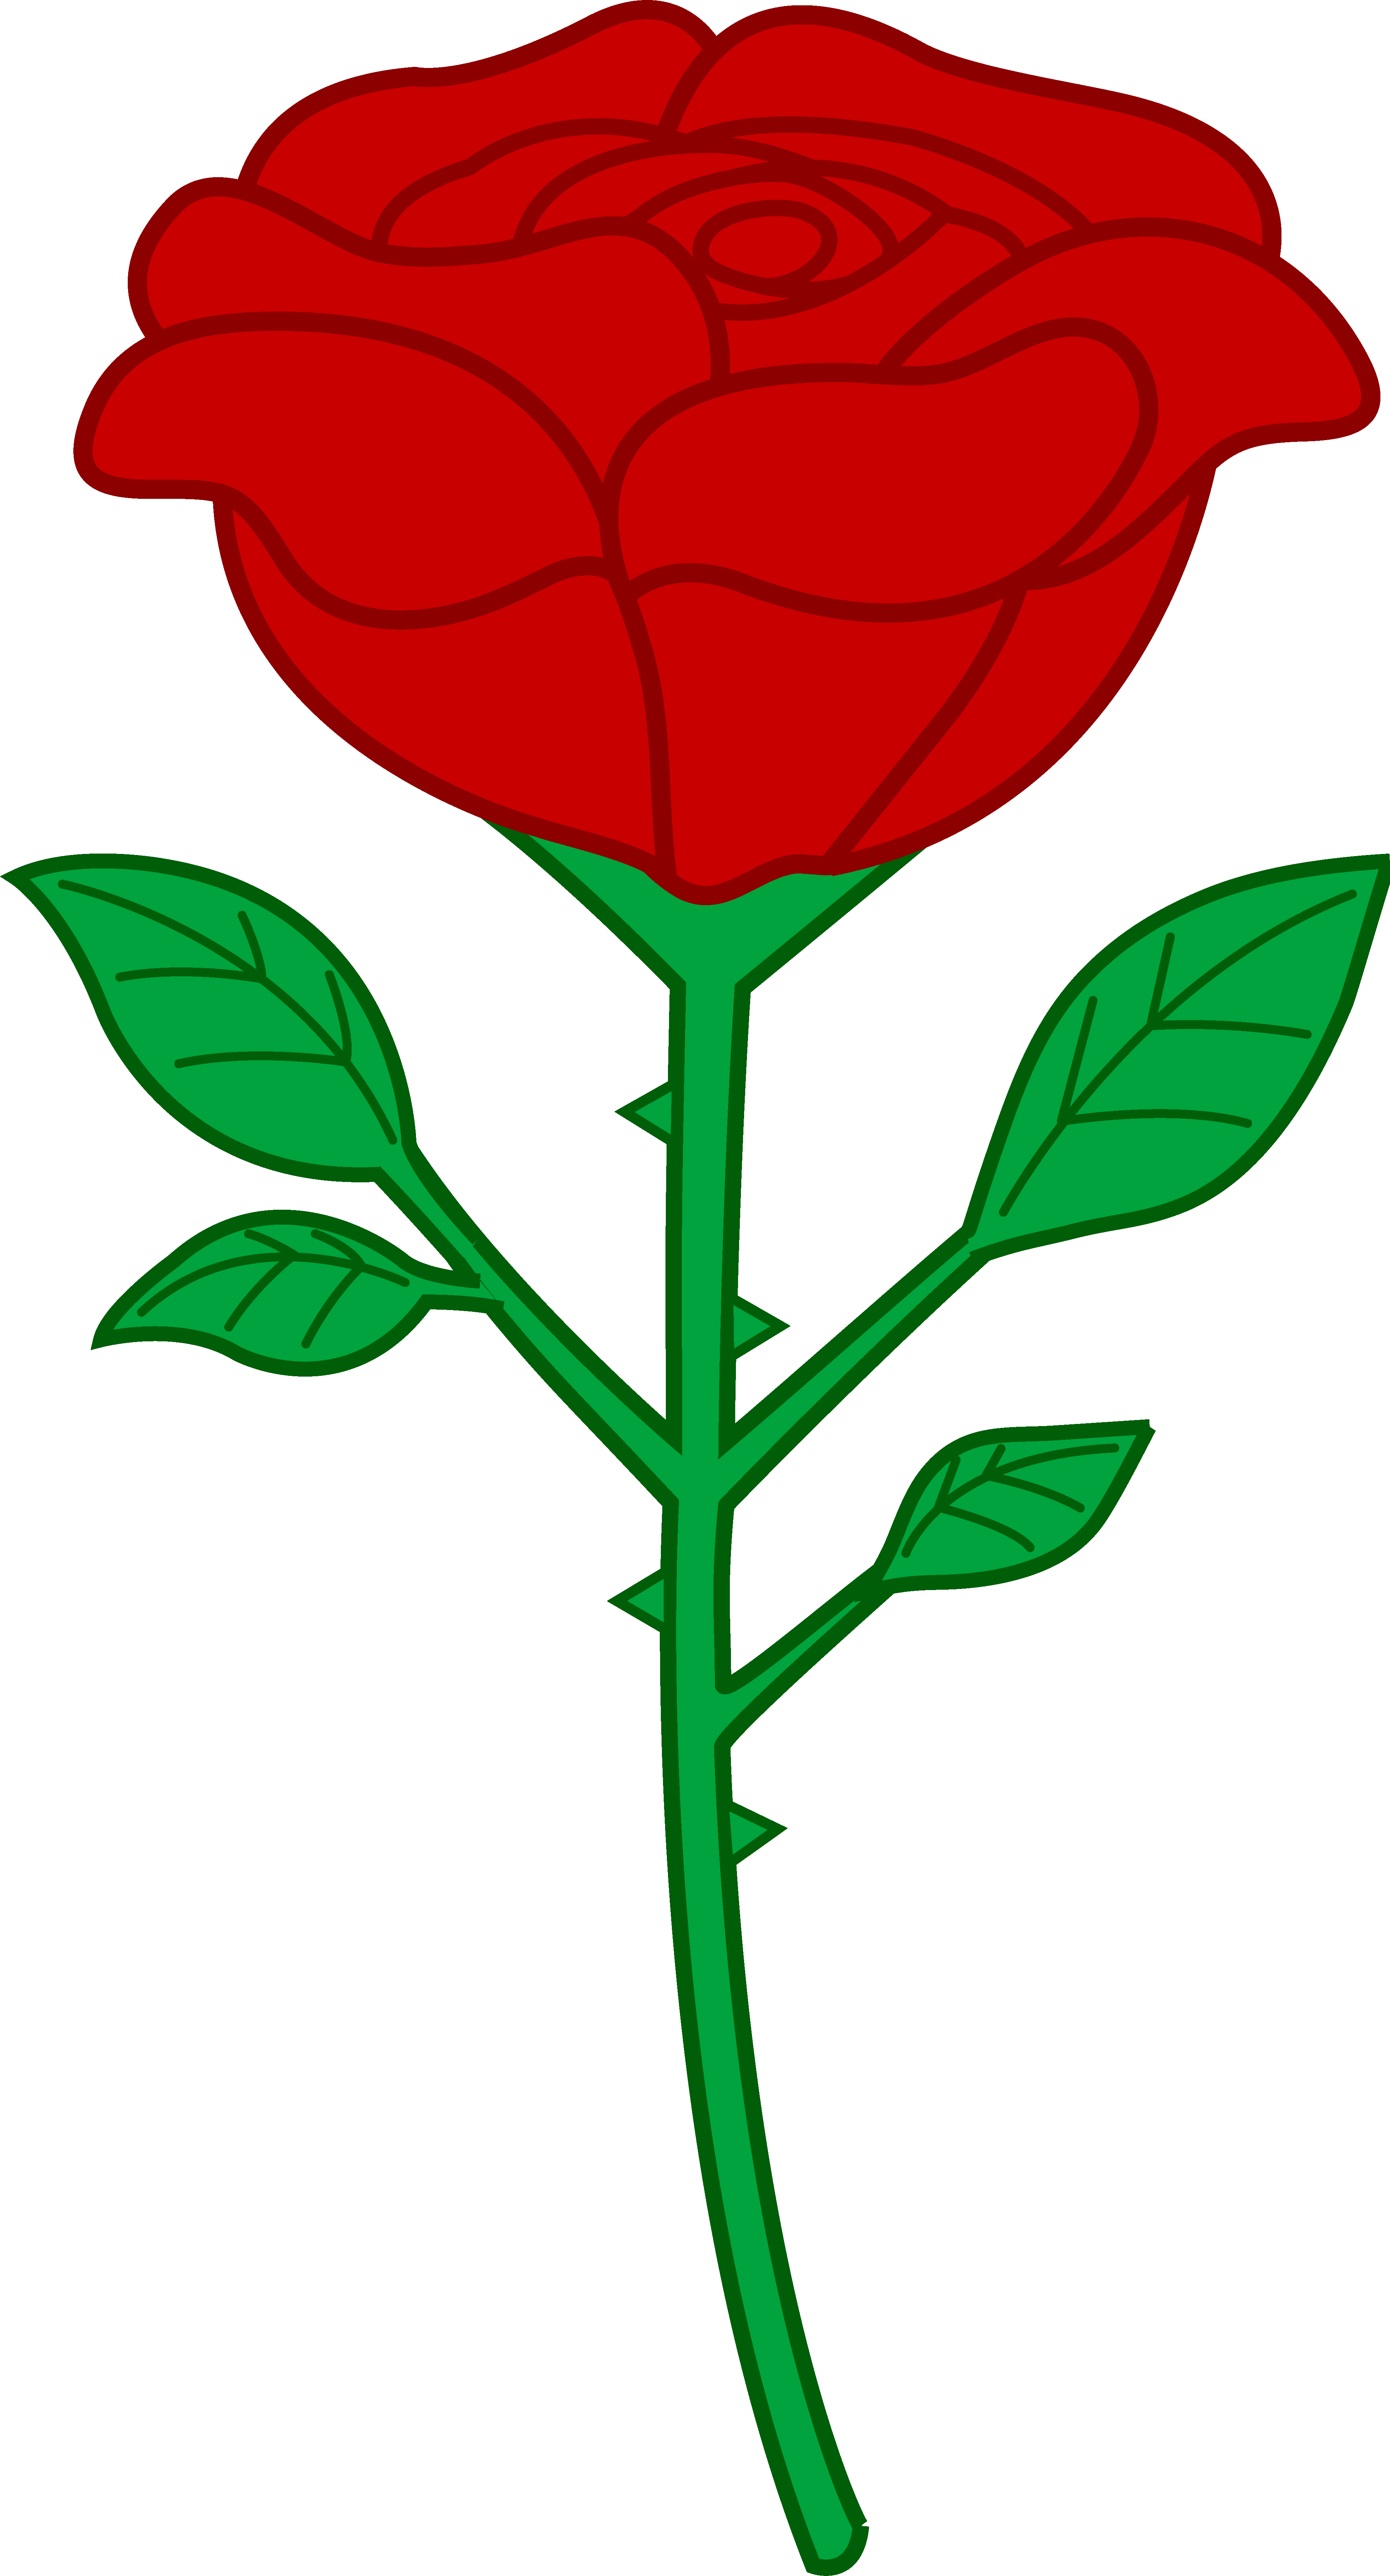 Single red rose clipart picture library download Free Red Rose Clipart, Download Free Clip Art, Free Clip Art on ... picture library download